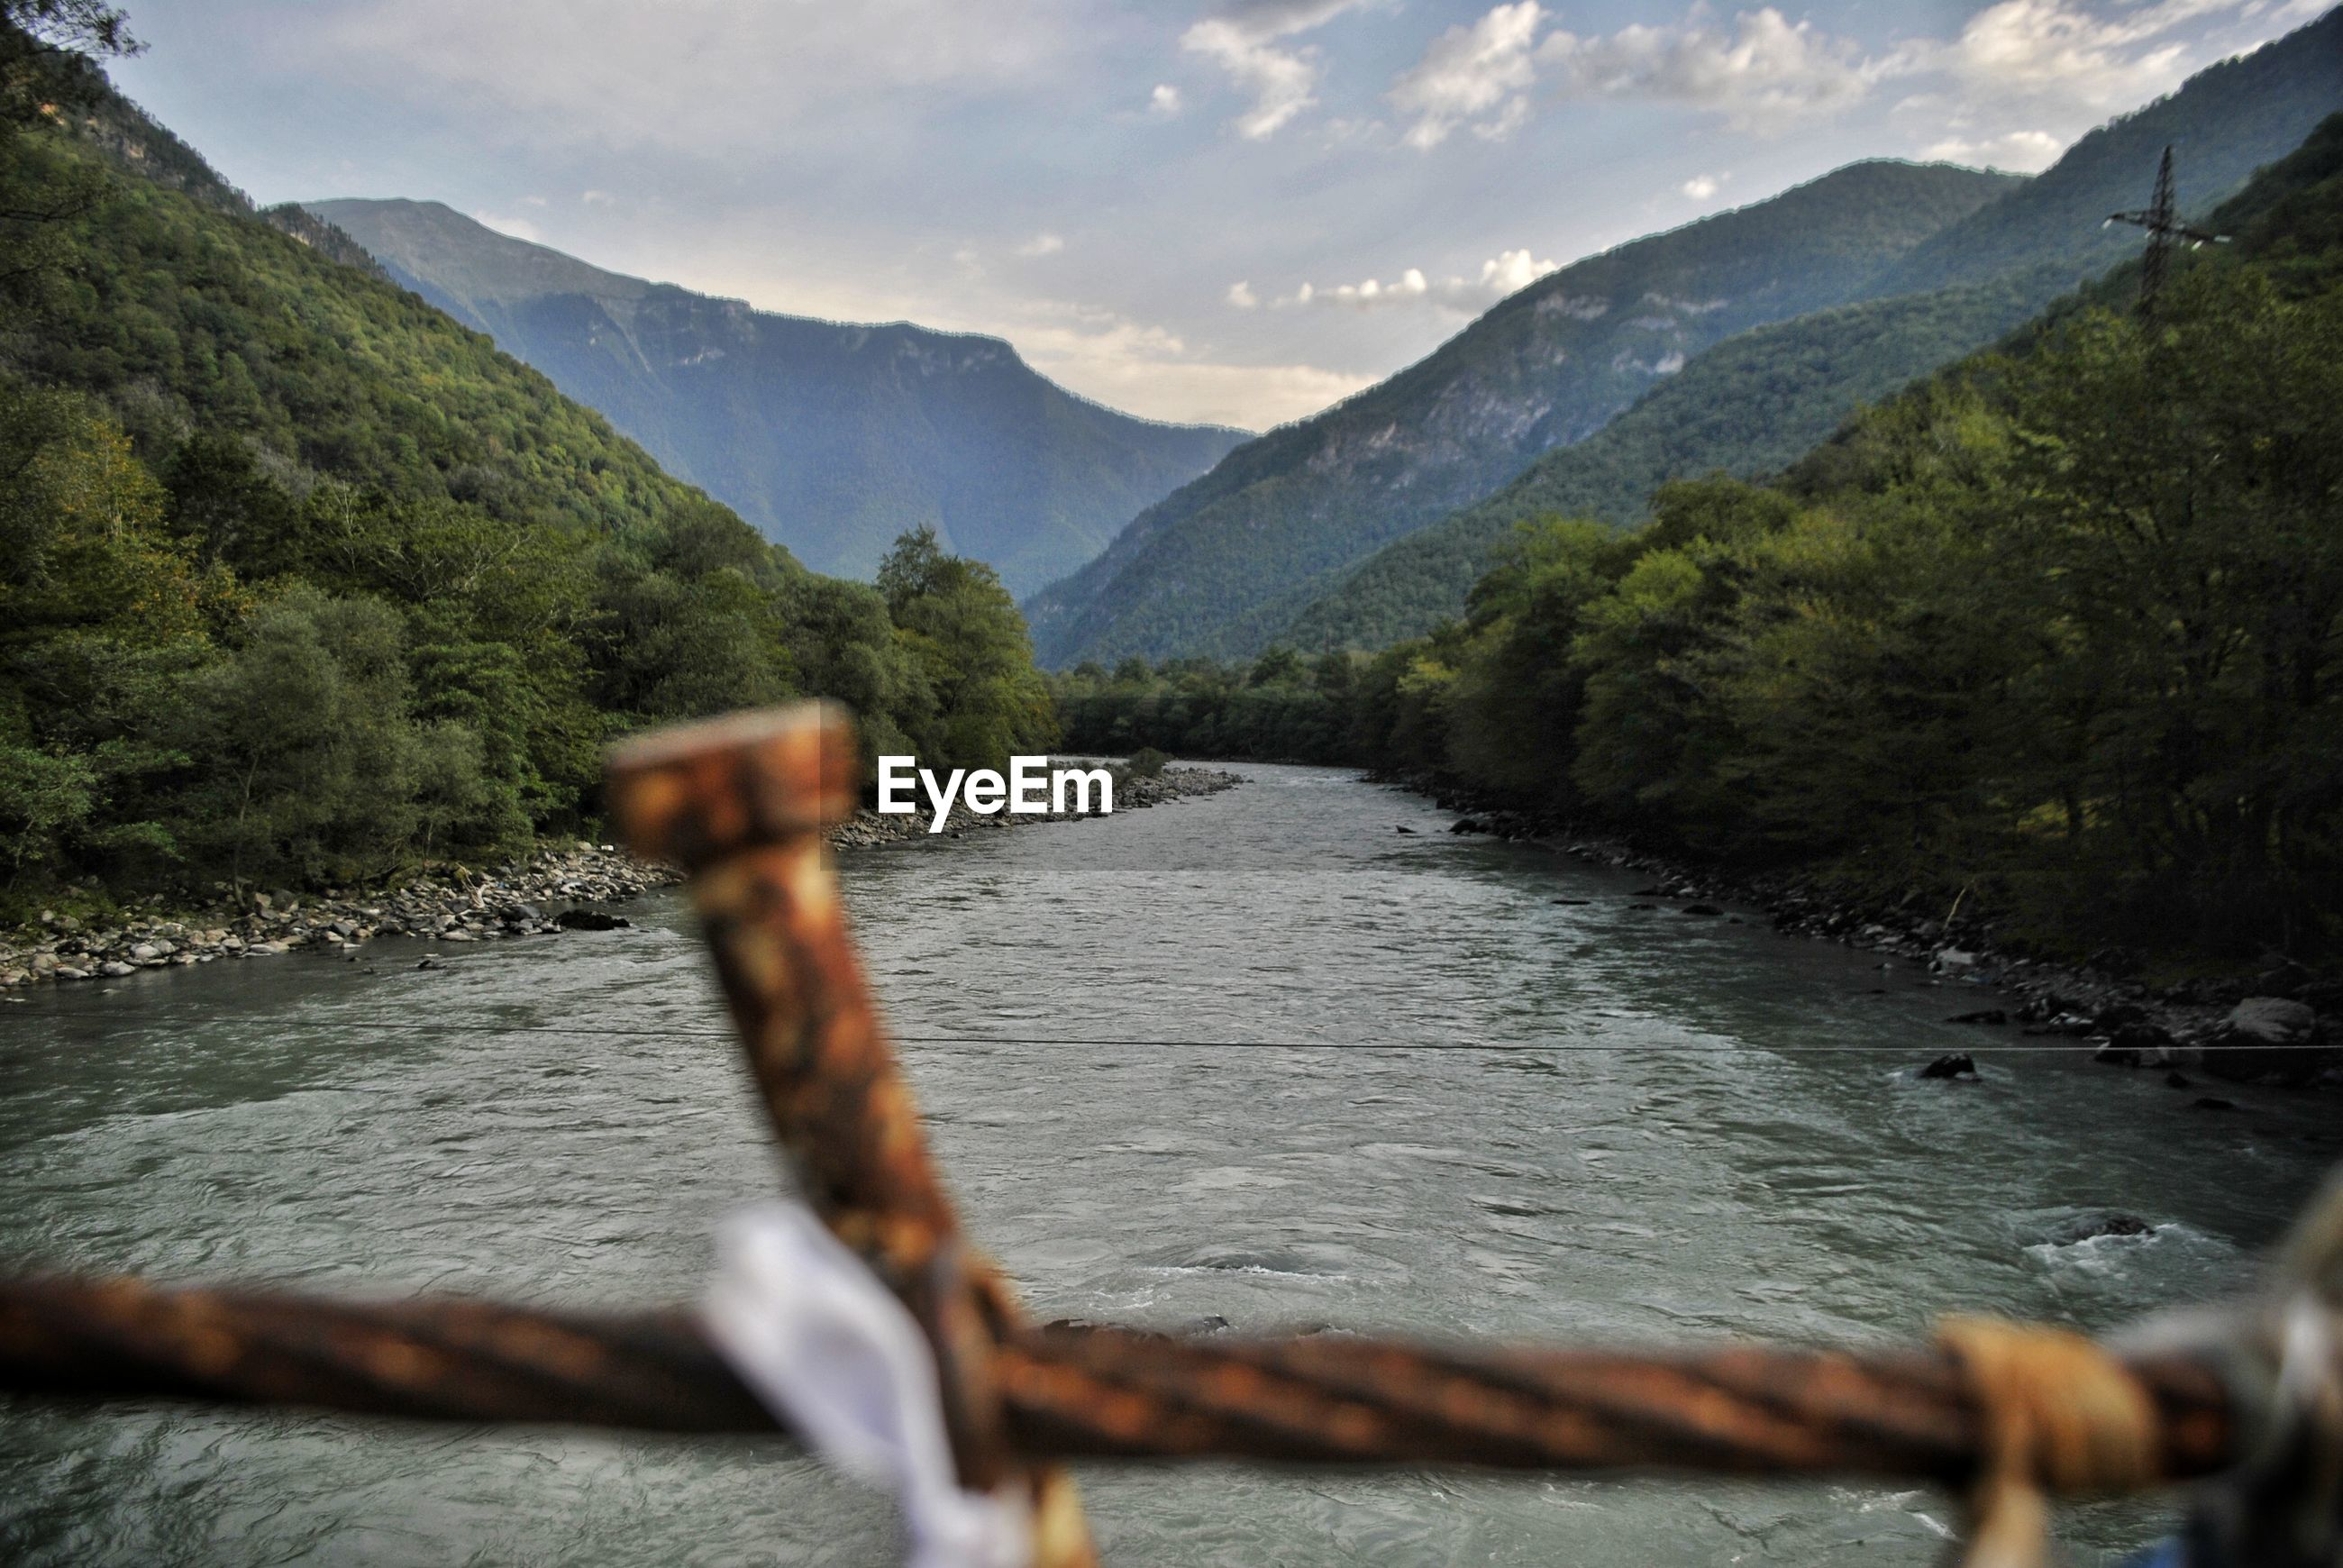 SCENIC VIEW OF RIVER AGAINST MOUNTAINS